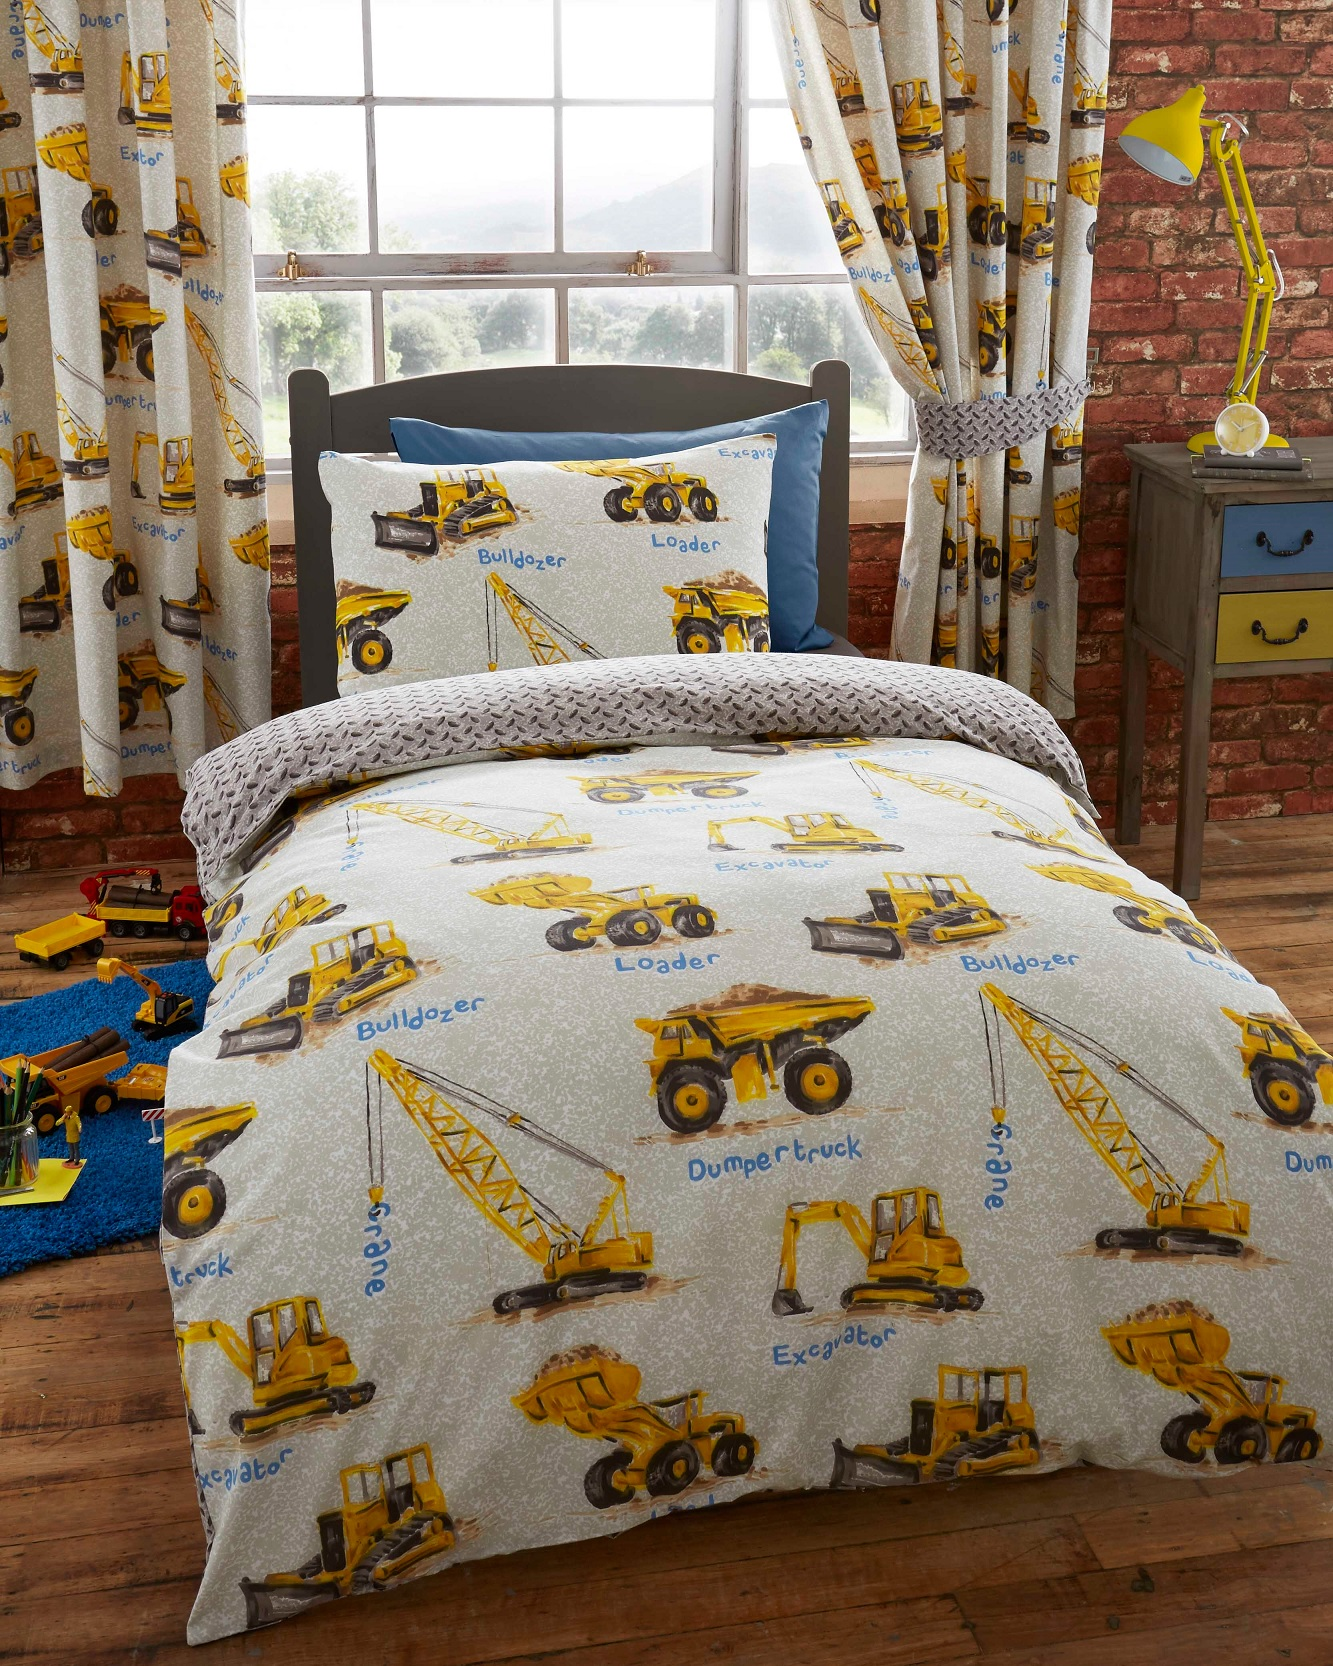 CHILDRENS KIDS QUILT DUVET COVER PILLOWCASES BEDDING SET Luxury Bedding Sets Matching Curtains